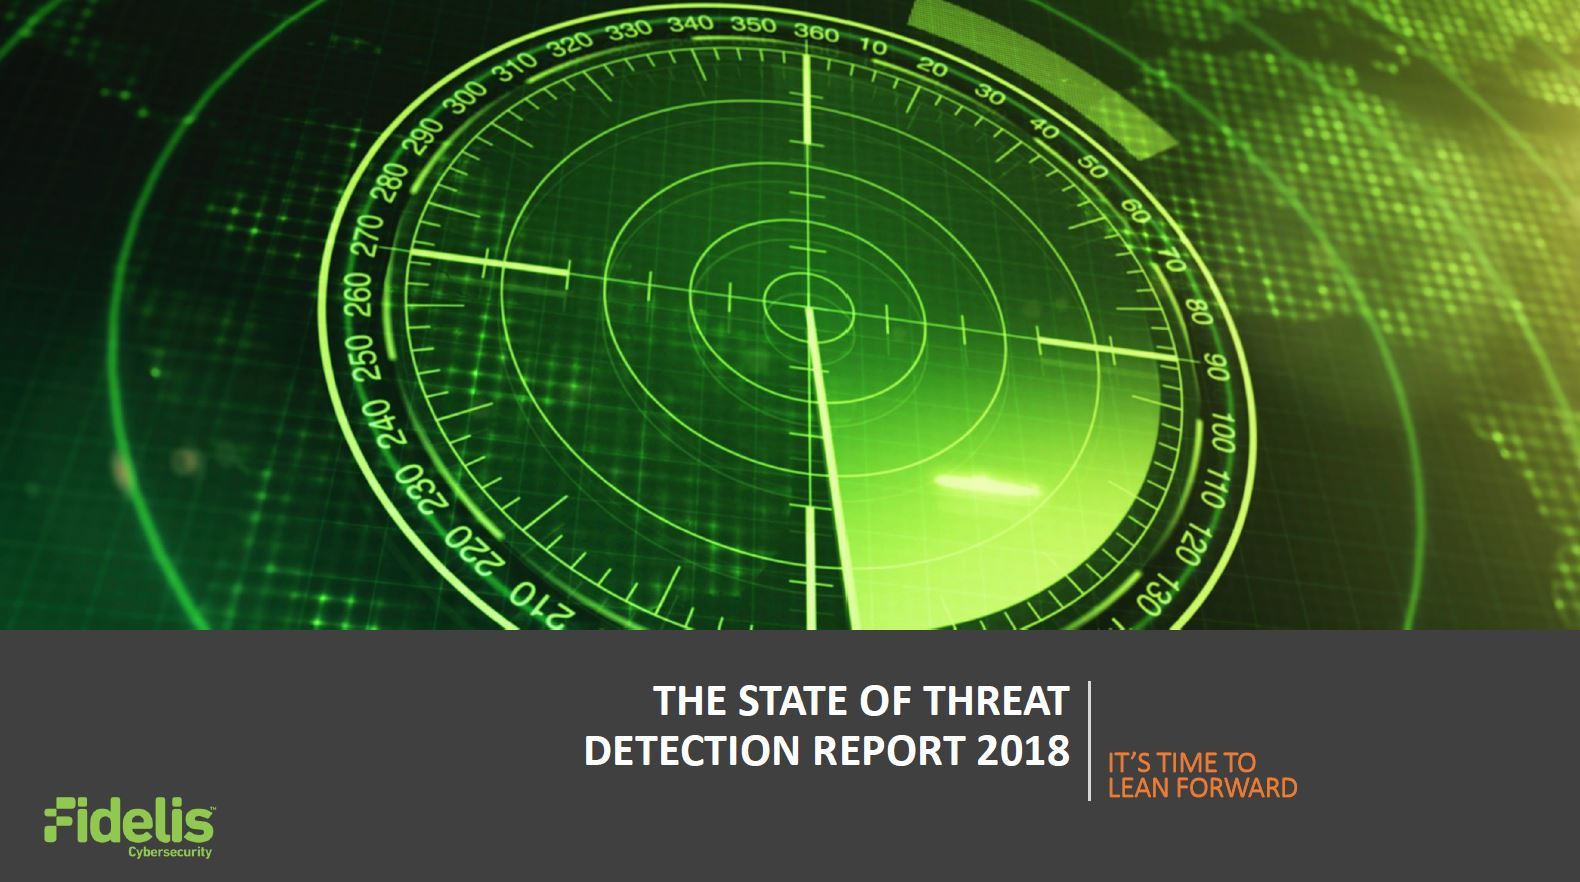 The State of Threat Detection Report 2018